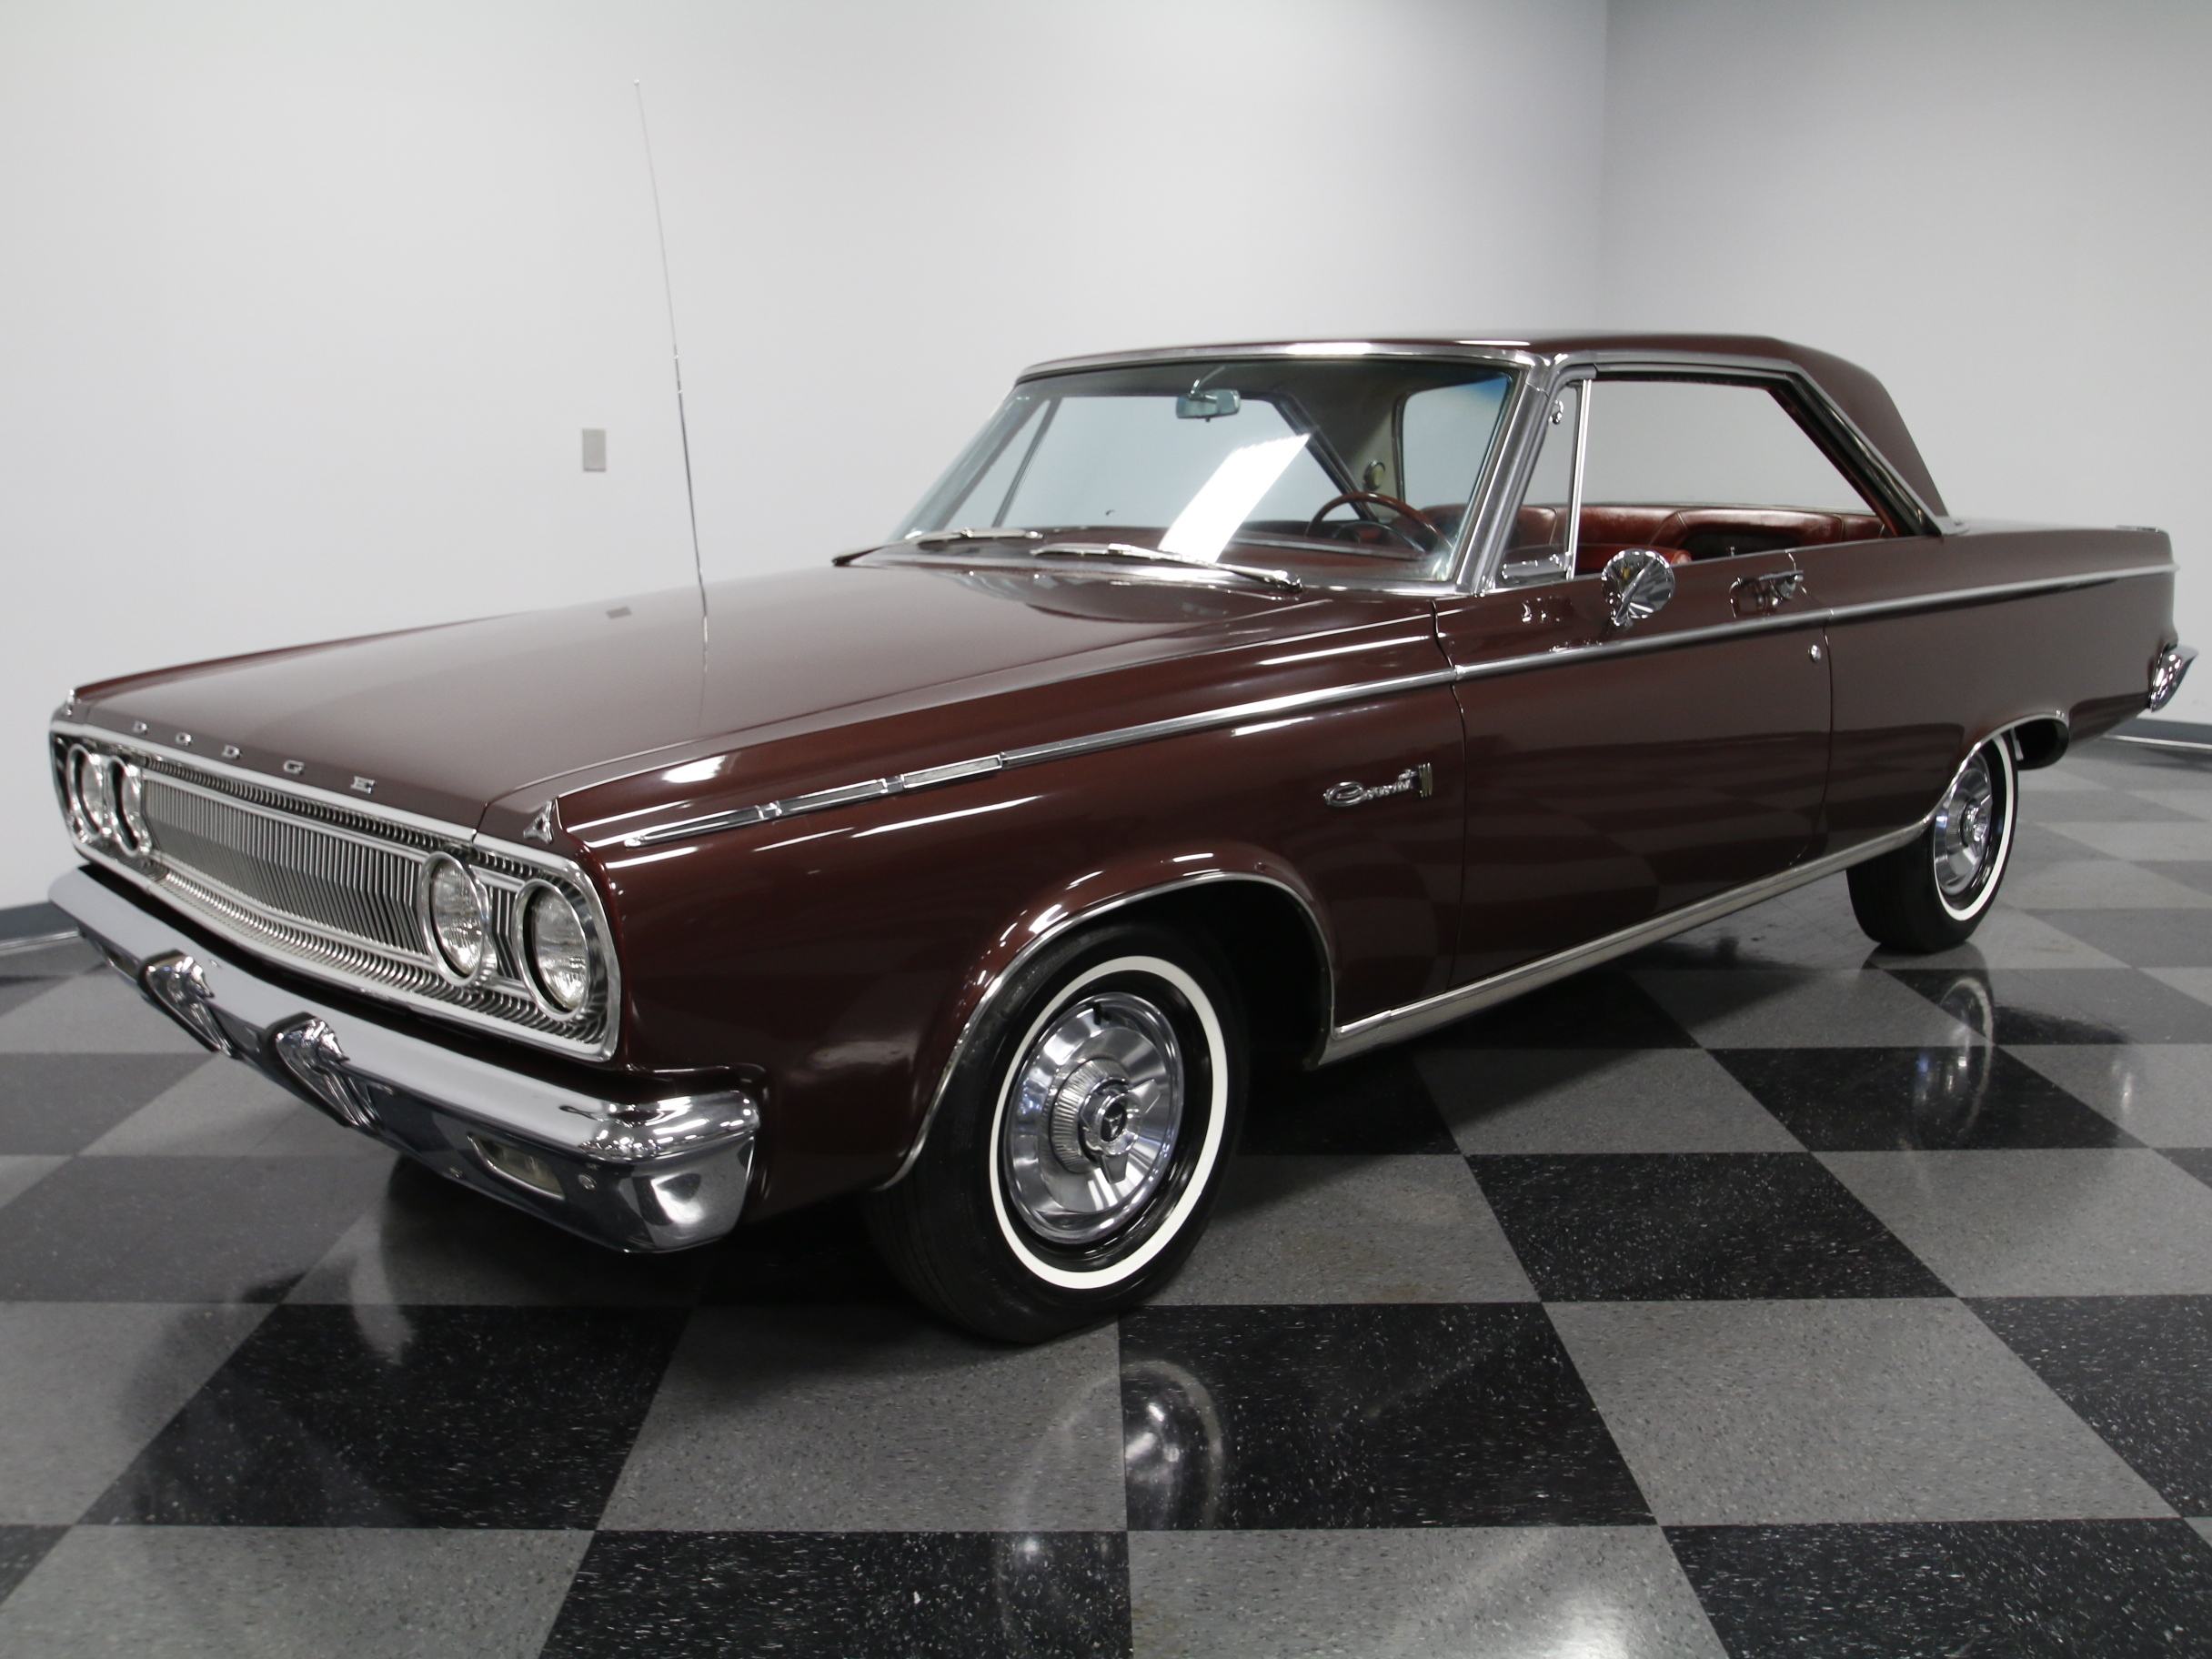 1965 Dodge Coronet Streetside Classics The Nation 39 S Top Consignment Dealer Of Classic And